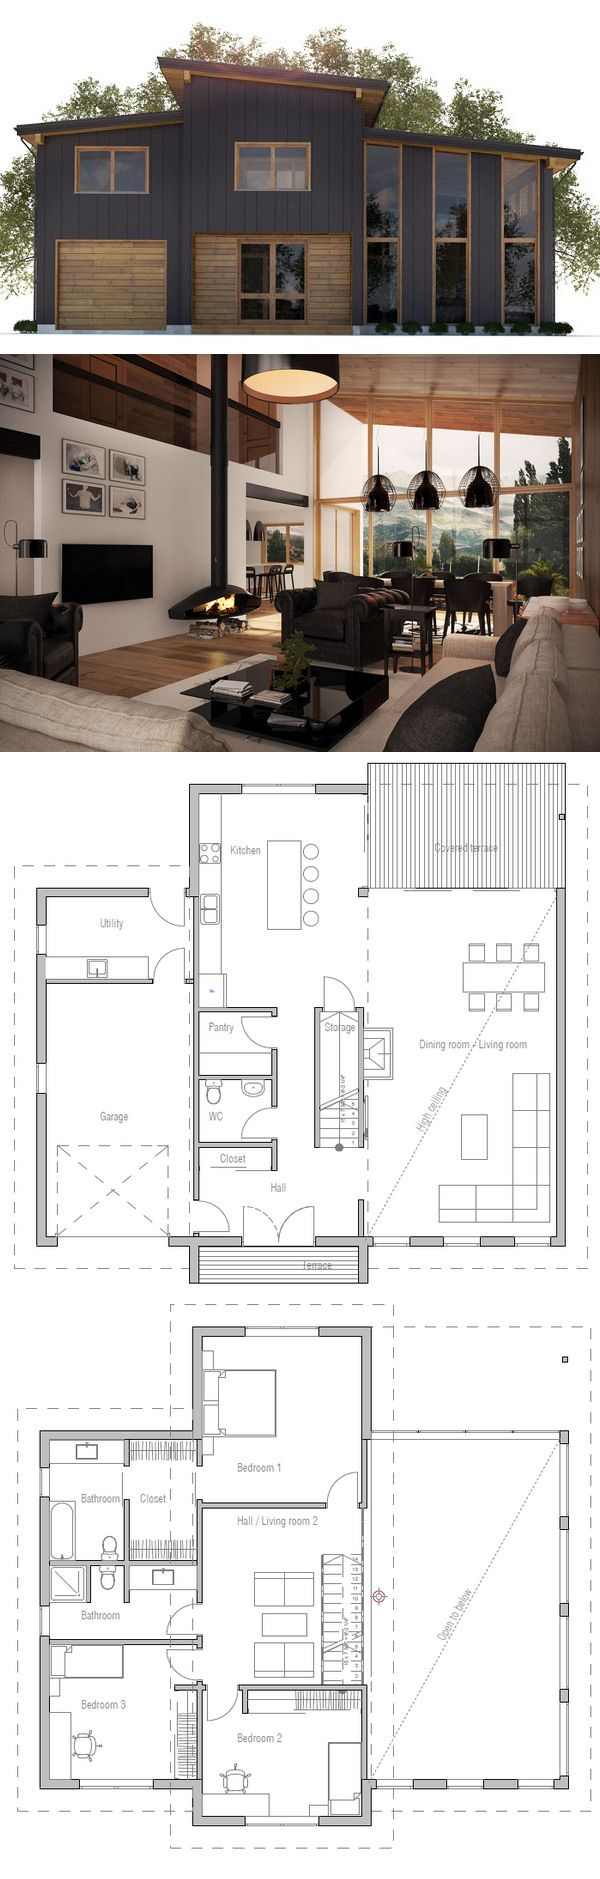 1000+ ideas about Small Modern House Plans on Pinterest Small ... - ^